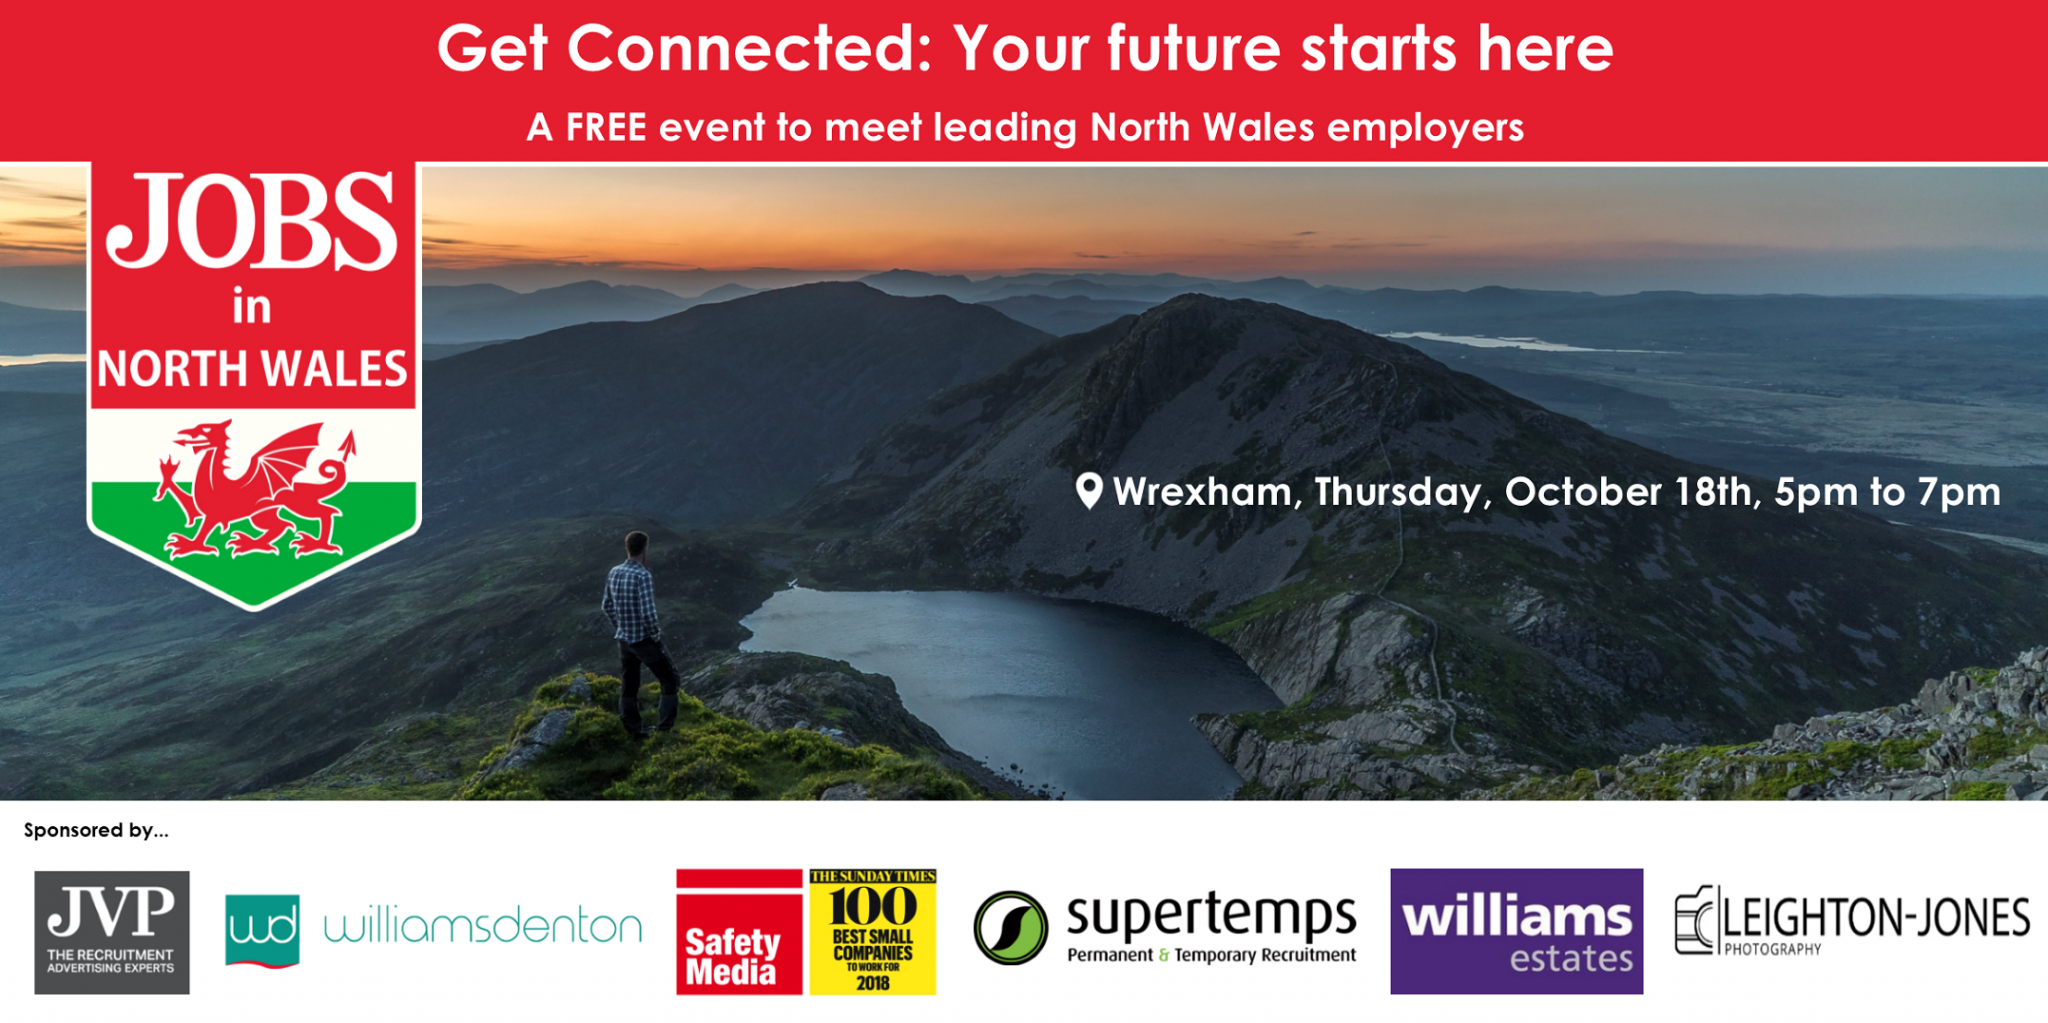 GET CONNECTED: Your future starts here – a FREE event to meet leading North Wales employers #northwales